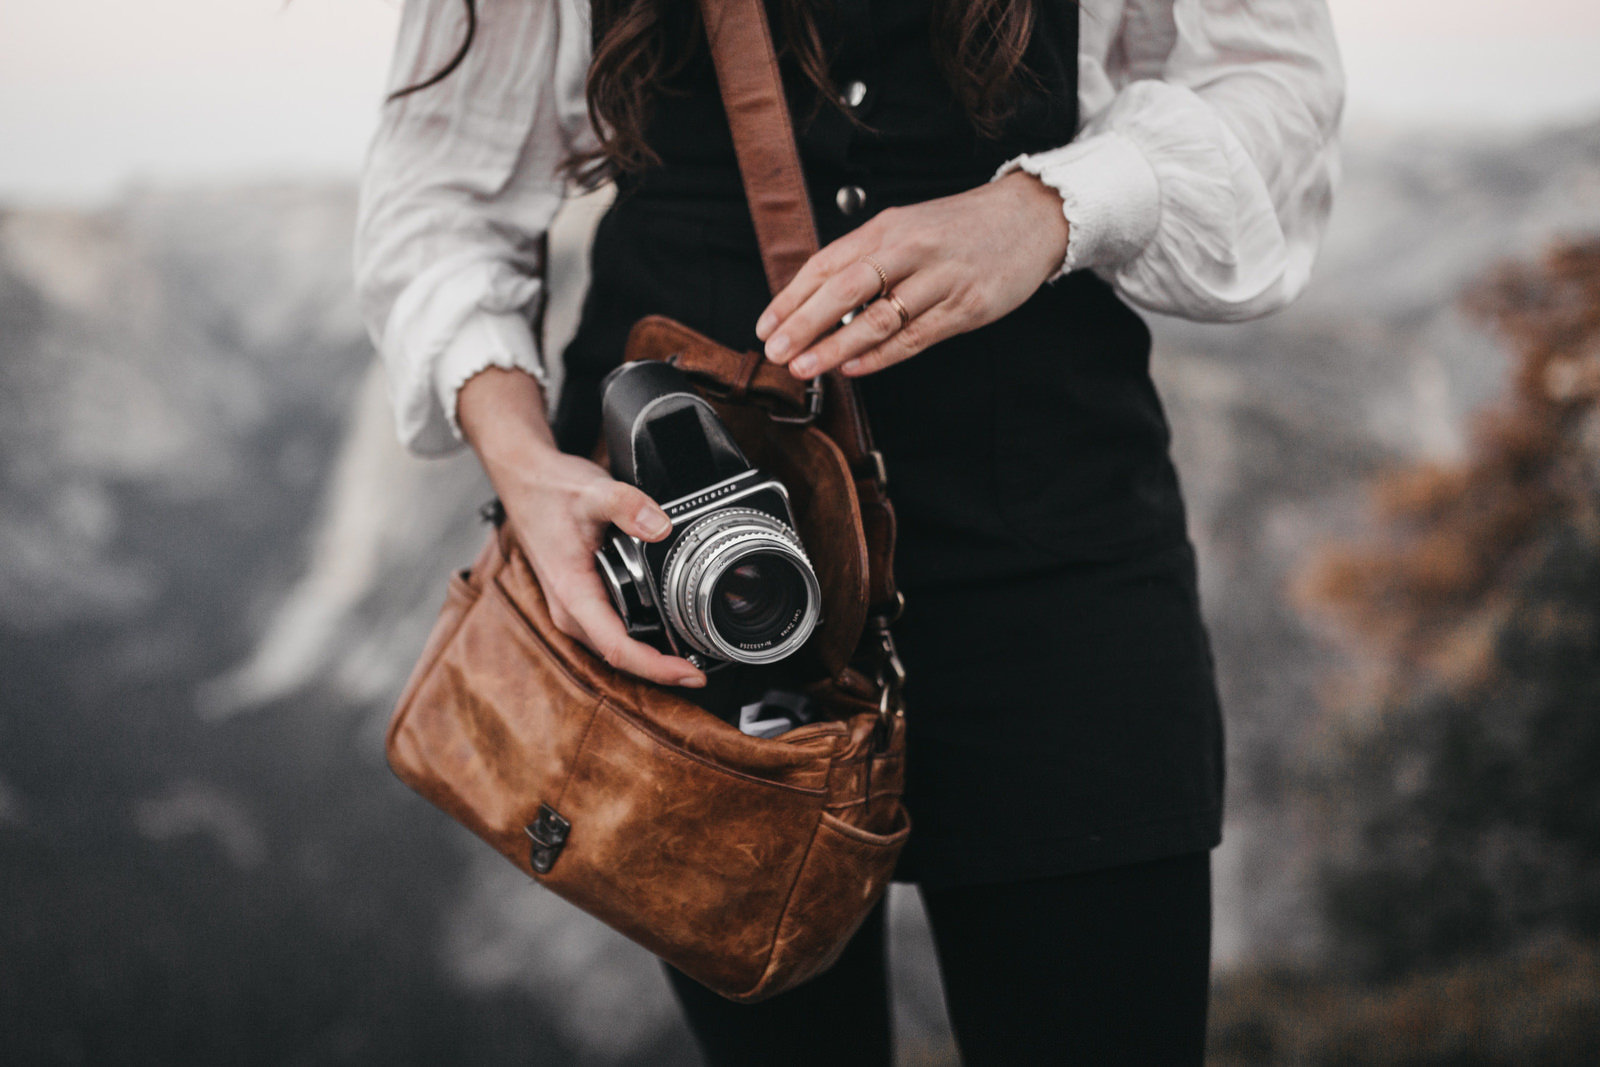 athena-and-camron-yosemite-national-park-christian-couple-travel-bloggers-couple-goals13-brown-leather-ona-camera-bag-film-camera-hipster-travel